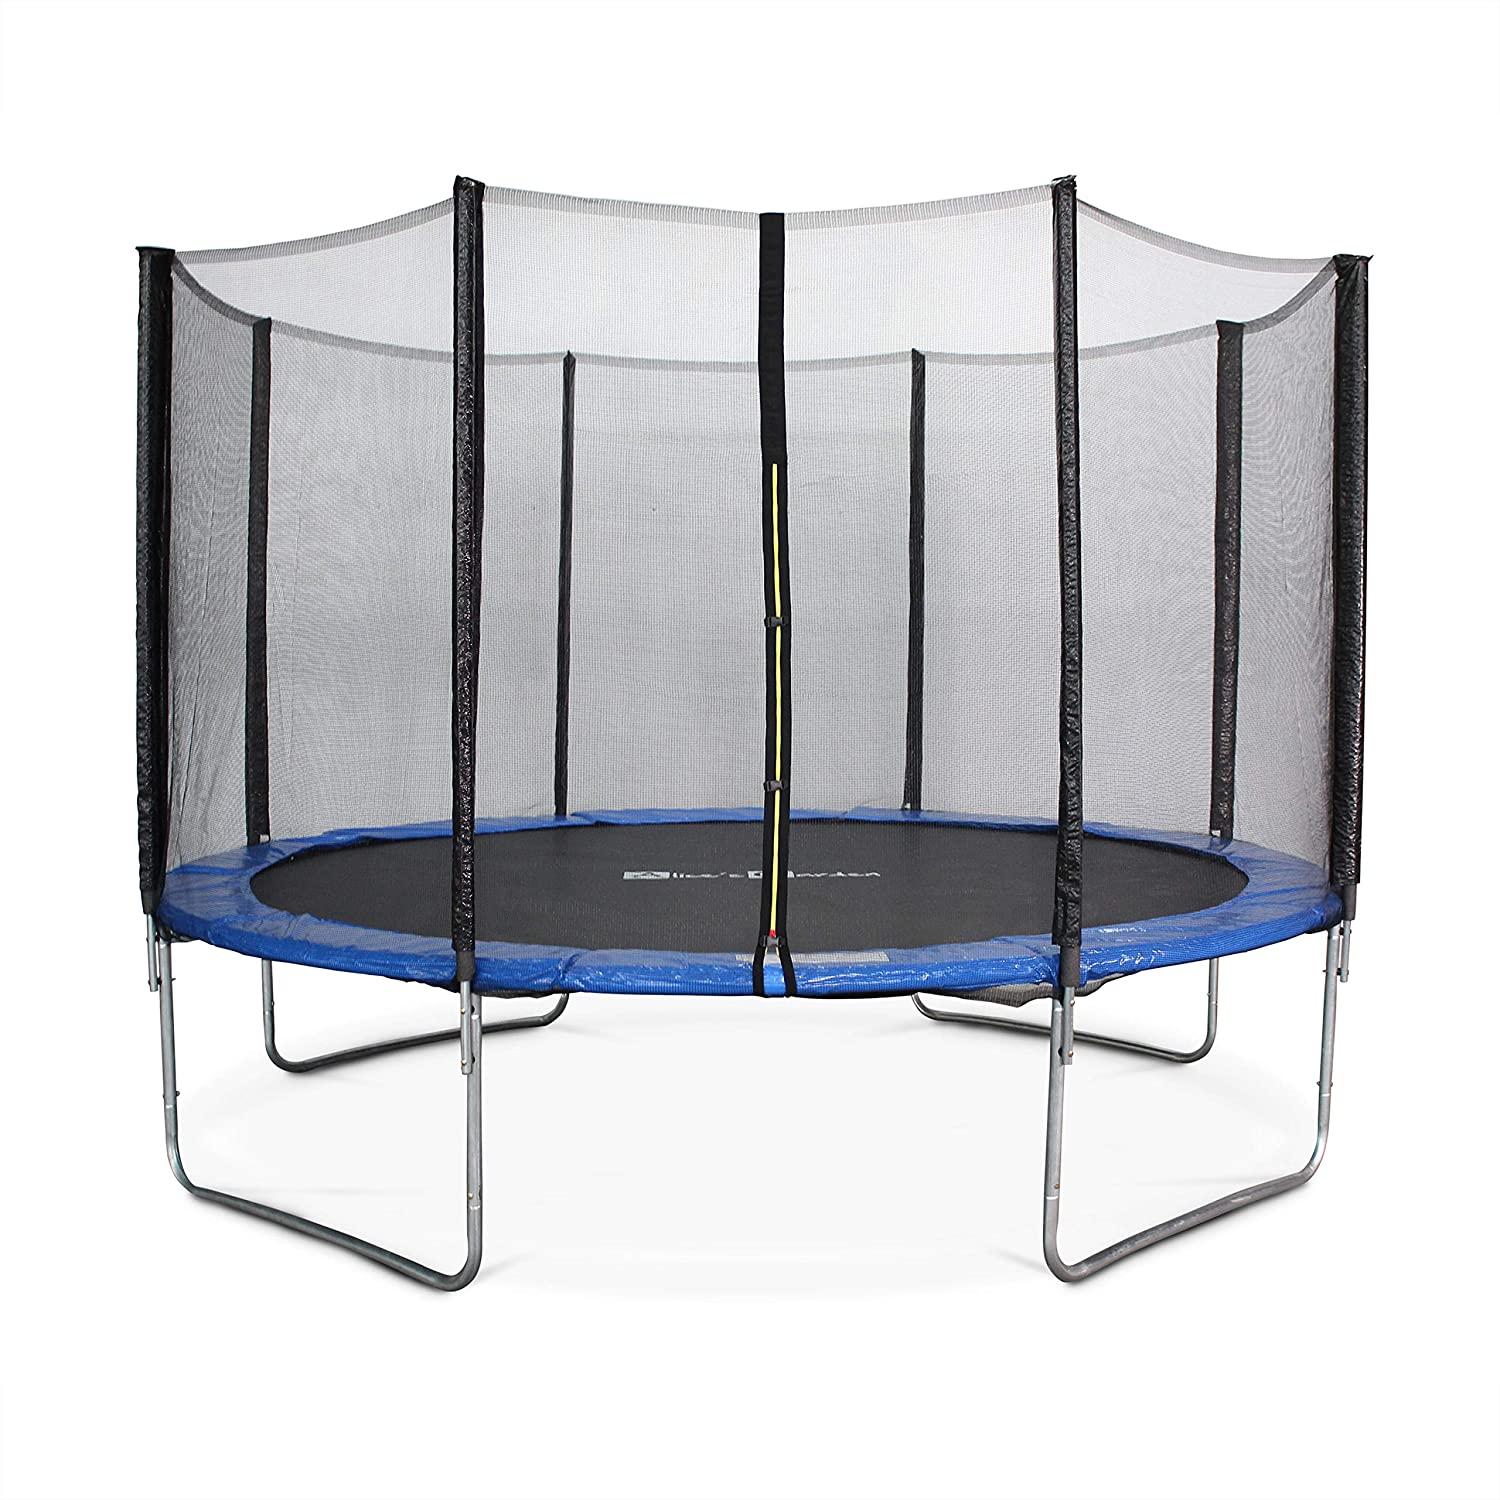 Alices Garden - Cama Elastica, Trampolin: Amazon.es: Deportes y ...